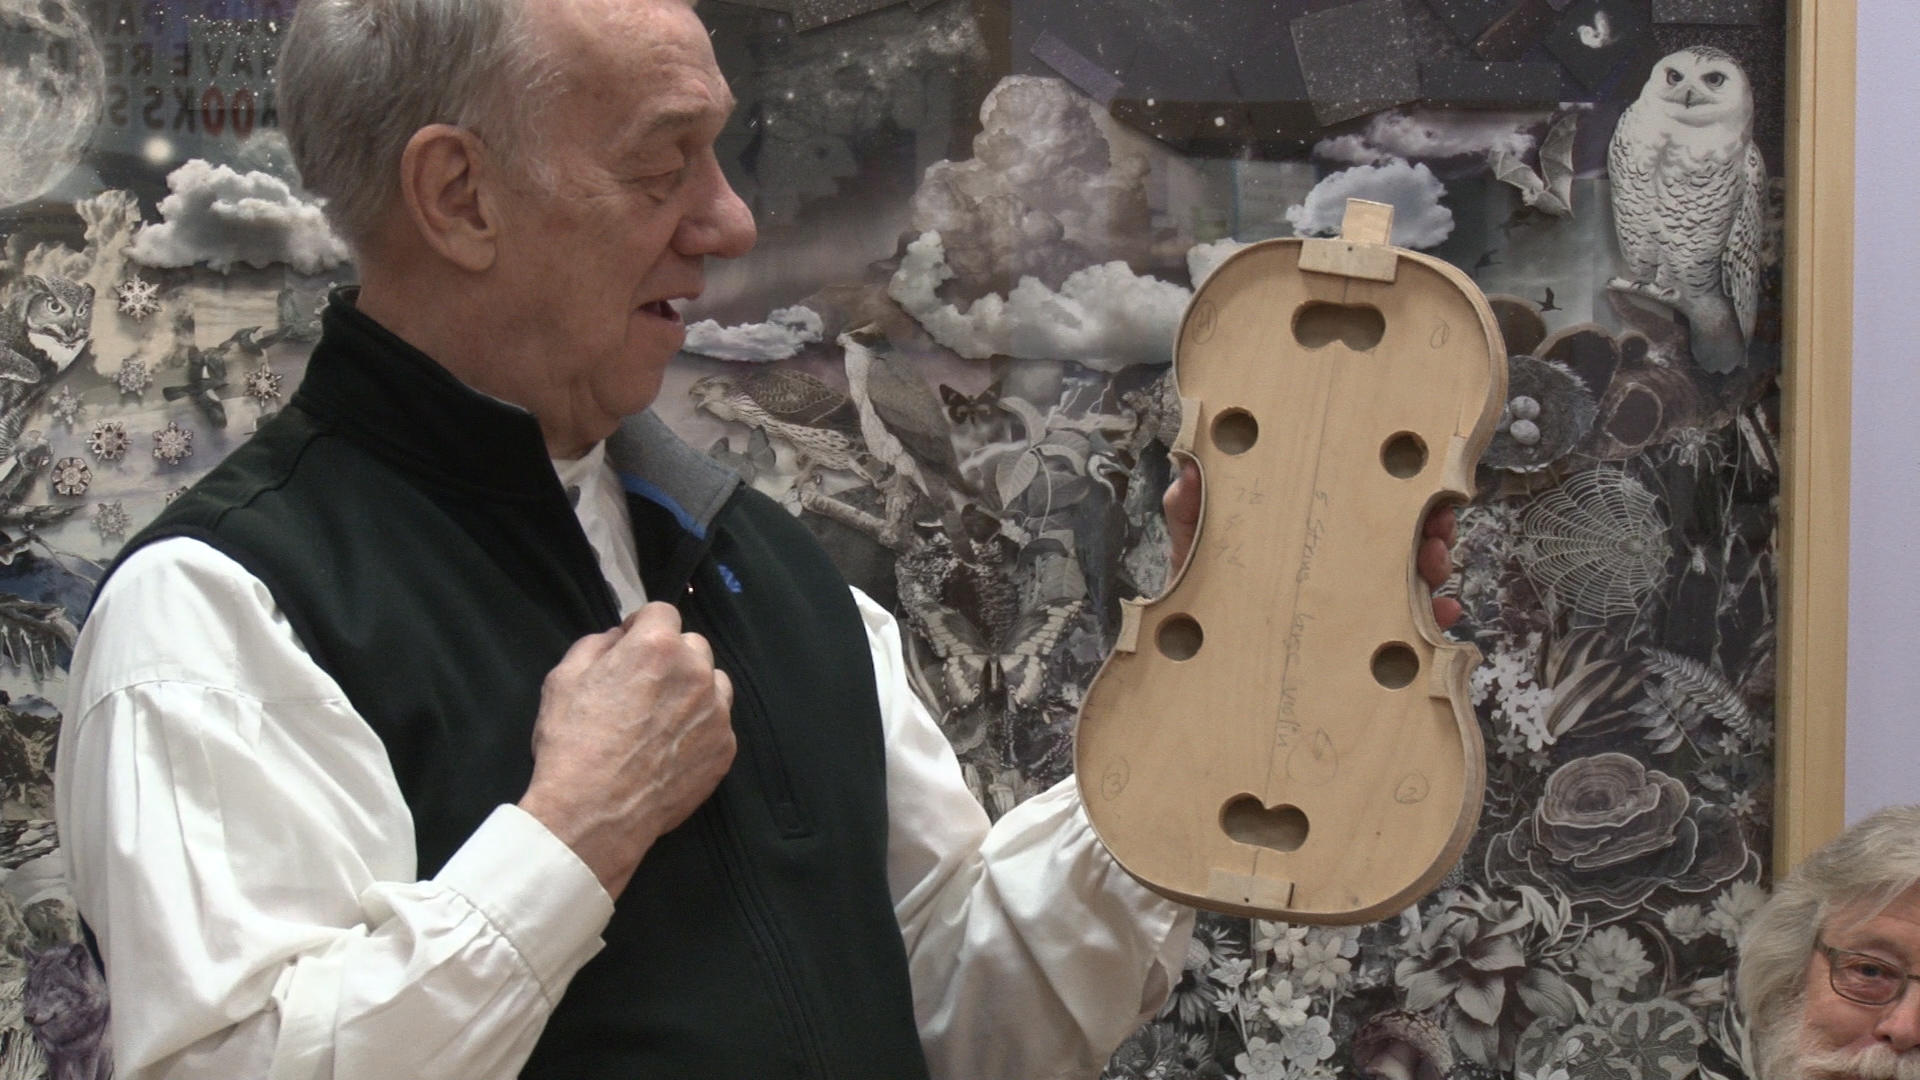 Every aspect of building a violin focuses on acoustic quality. Michael Denny/Wadena Pioneer Journal